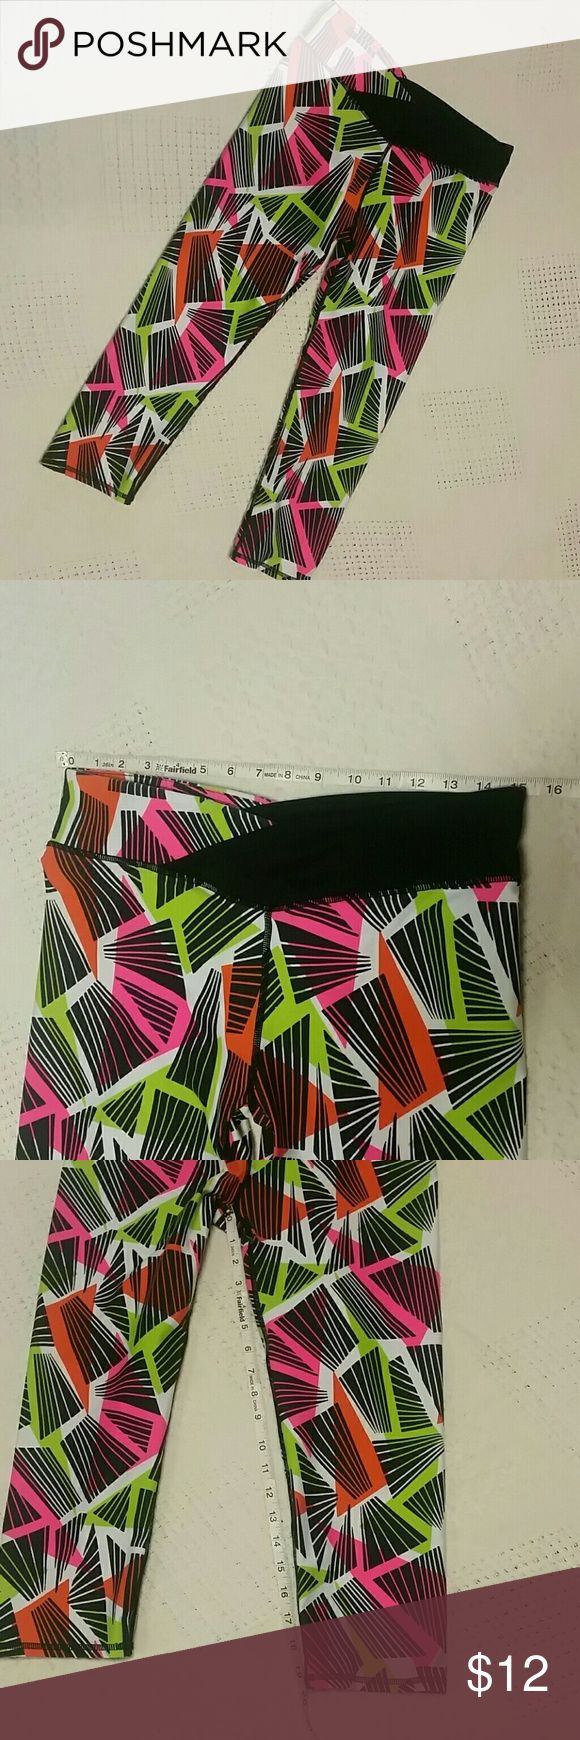 Fabletics Pink green orange tights workout pants Nylon spandex blend pre-owned tights, tags are missing, fits xl, knee length Fabletics Pants Track Pants & Joggers